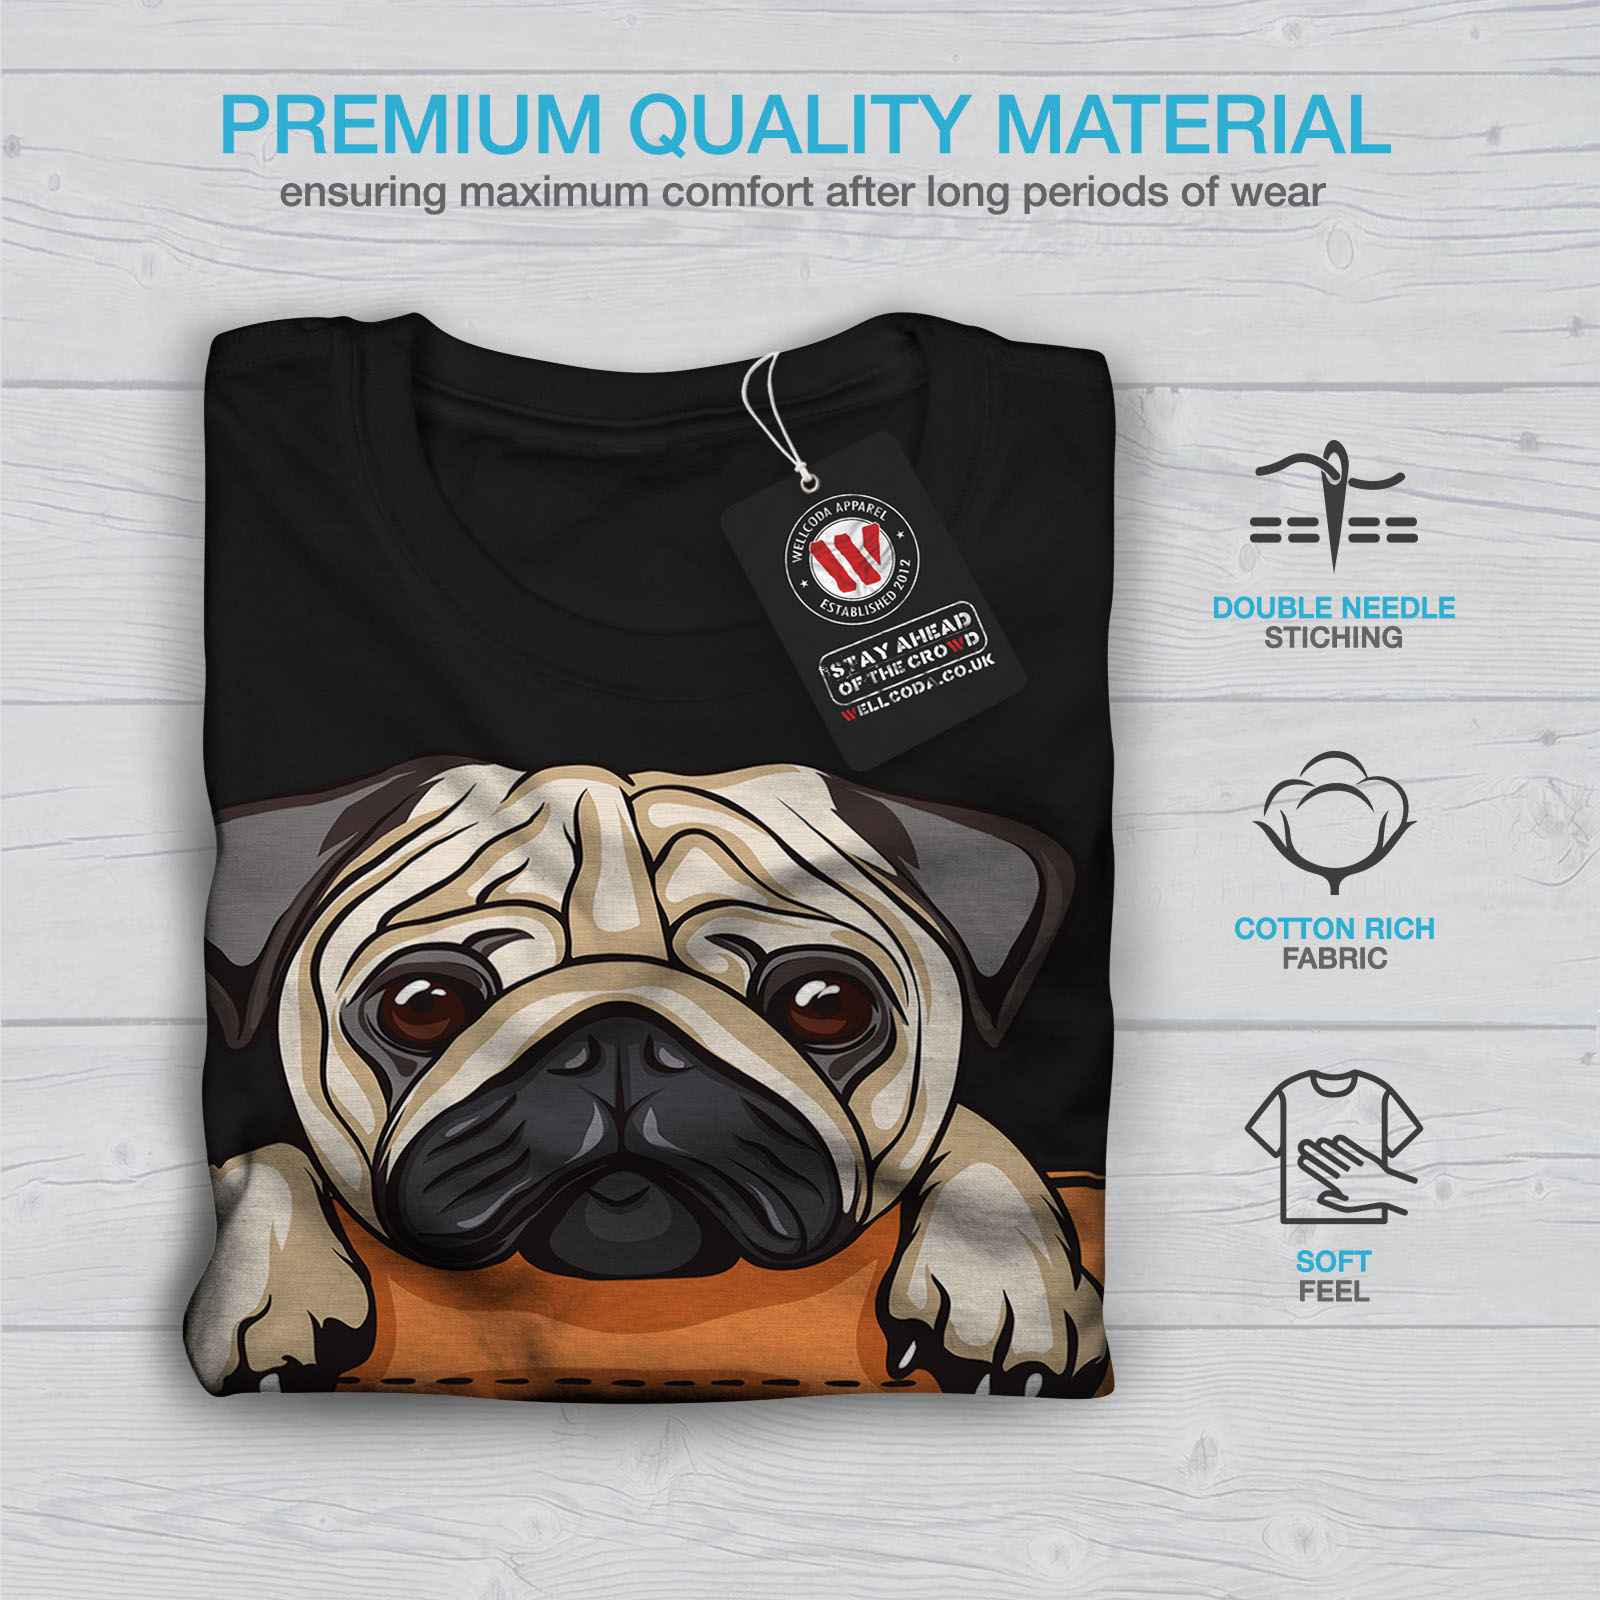 Details about Wellcoda Pug Puppy In Pocket Mens Long Sleeve T-shirt, Cute  Graphic Design